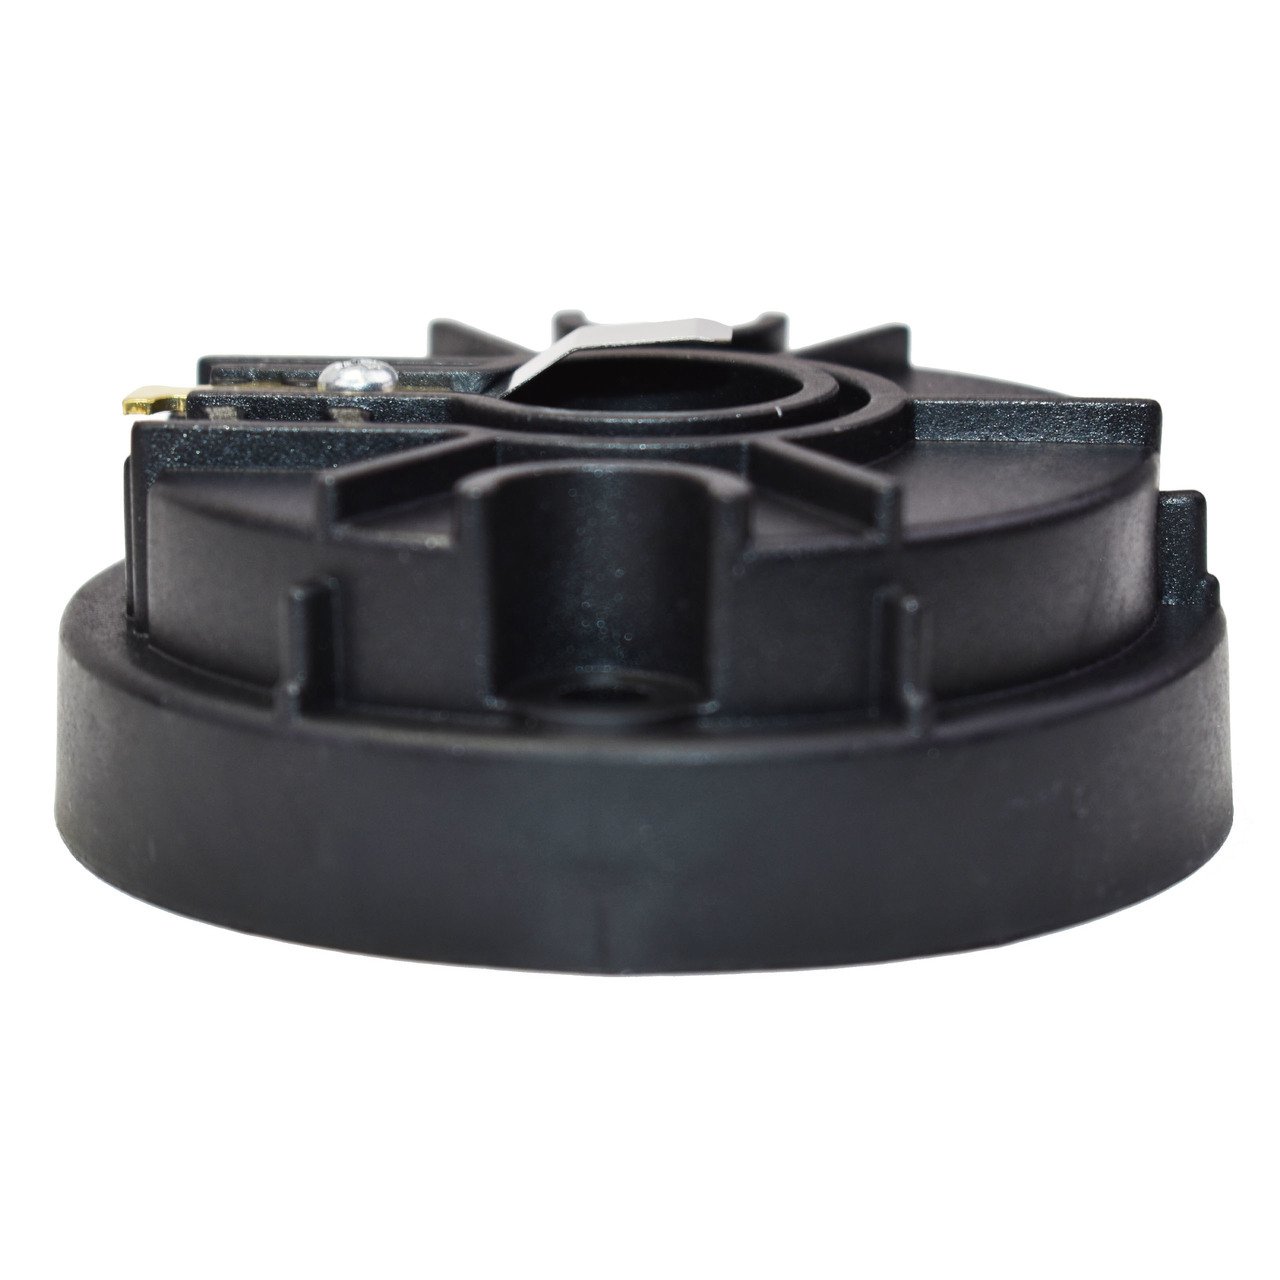 A-Team Performance 8-Cylinder Female Pro Series Distributor Cap & Rotor Kit (Black)